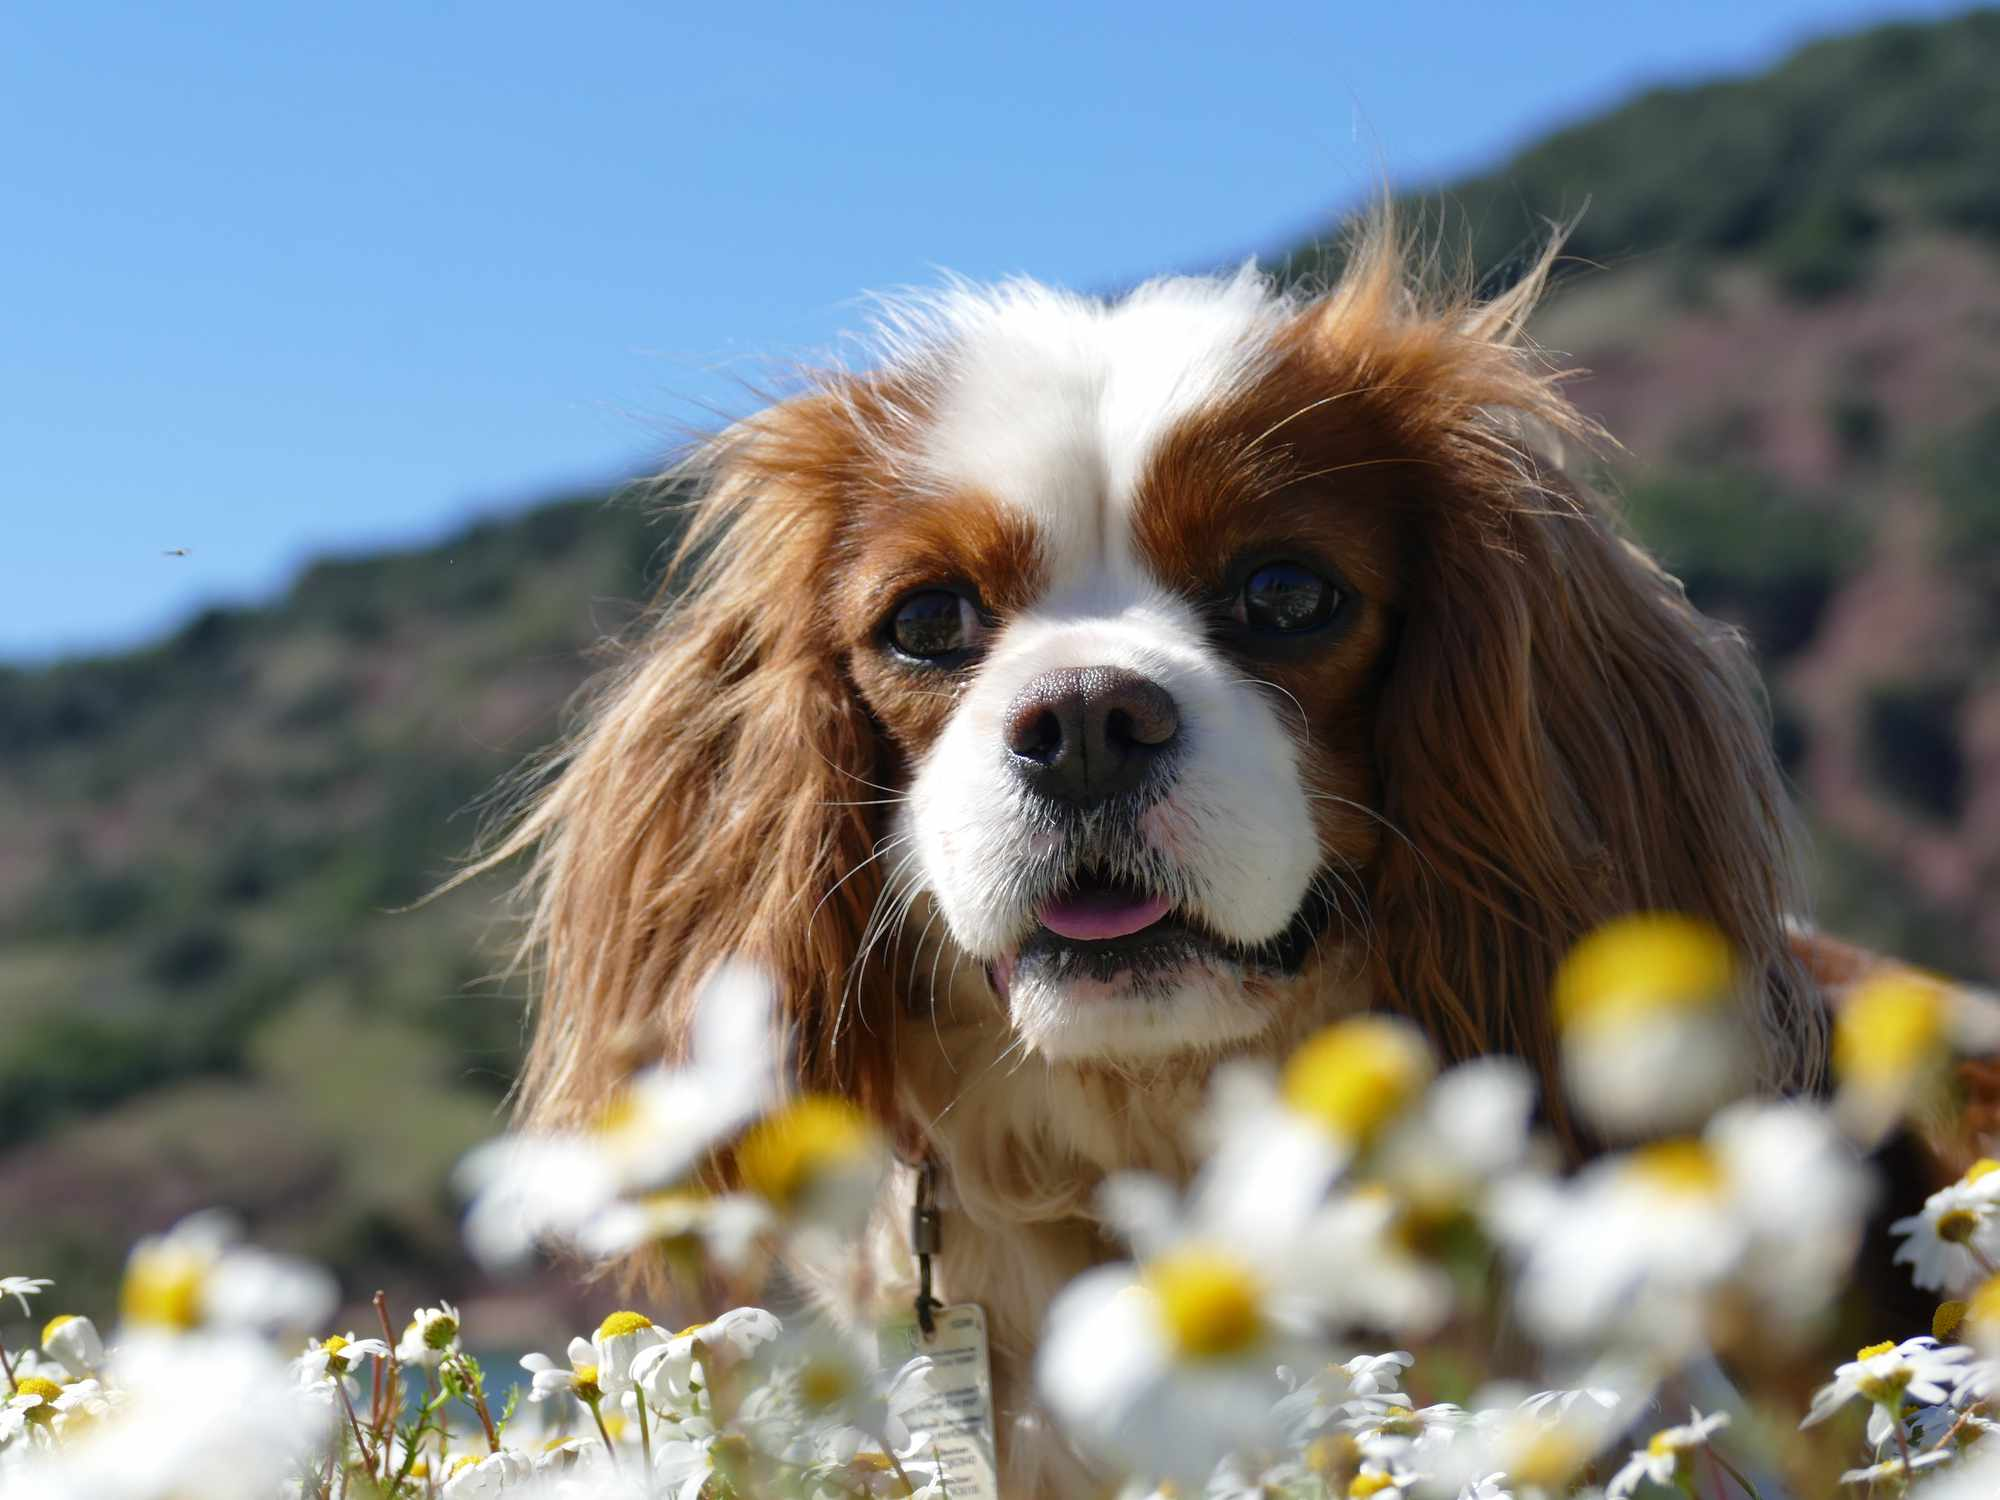 Cavalier King Charles Spaniel in front of some daisies